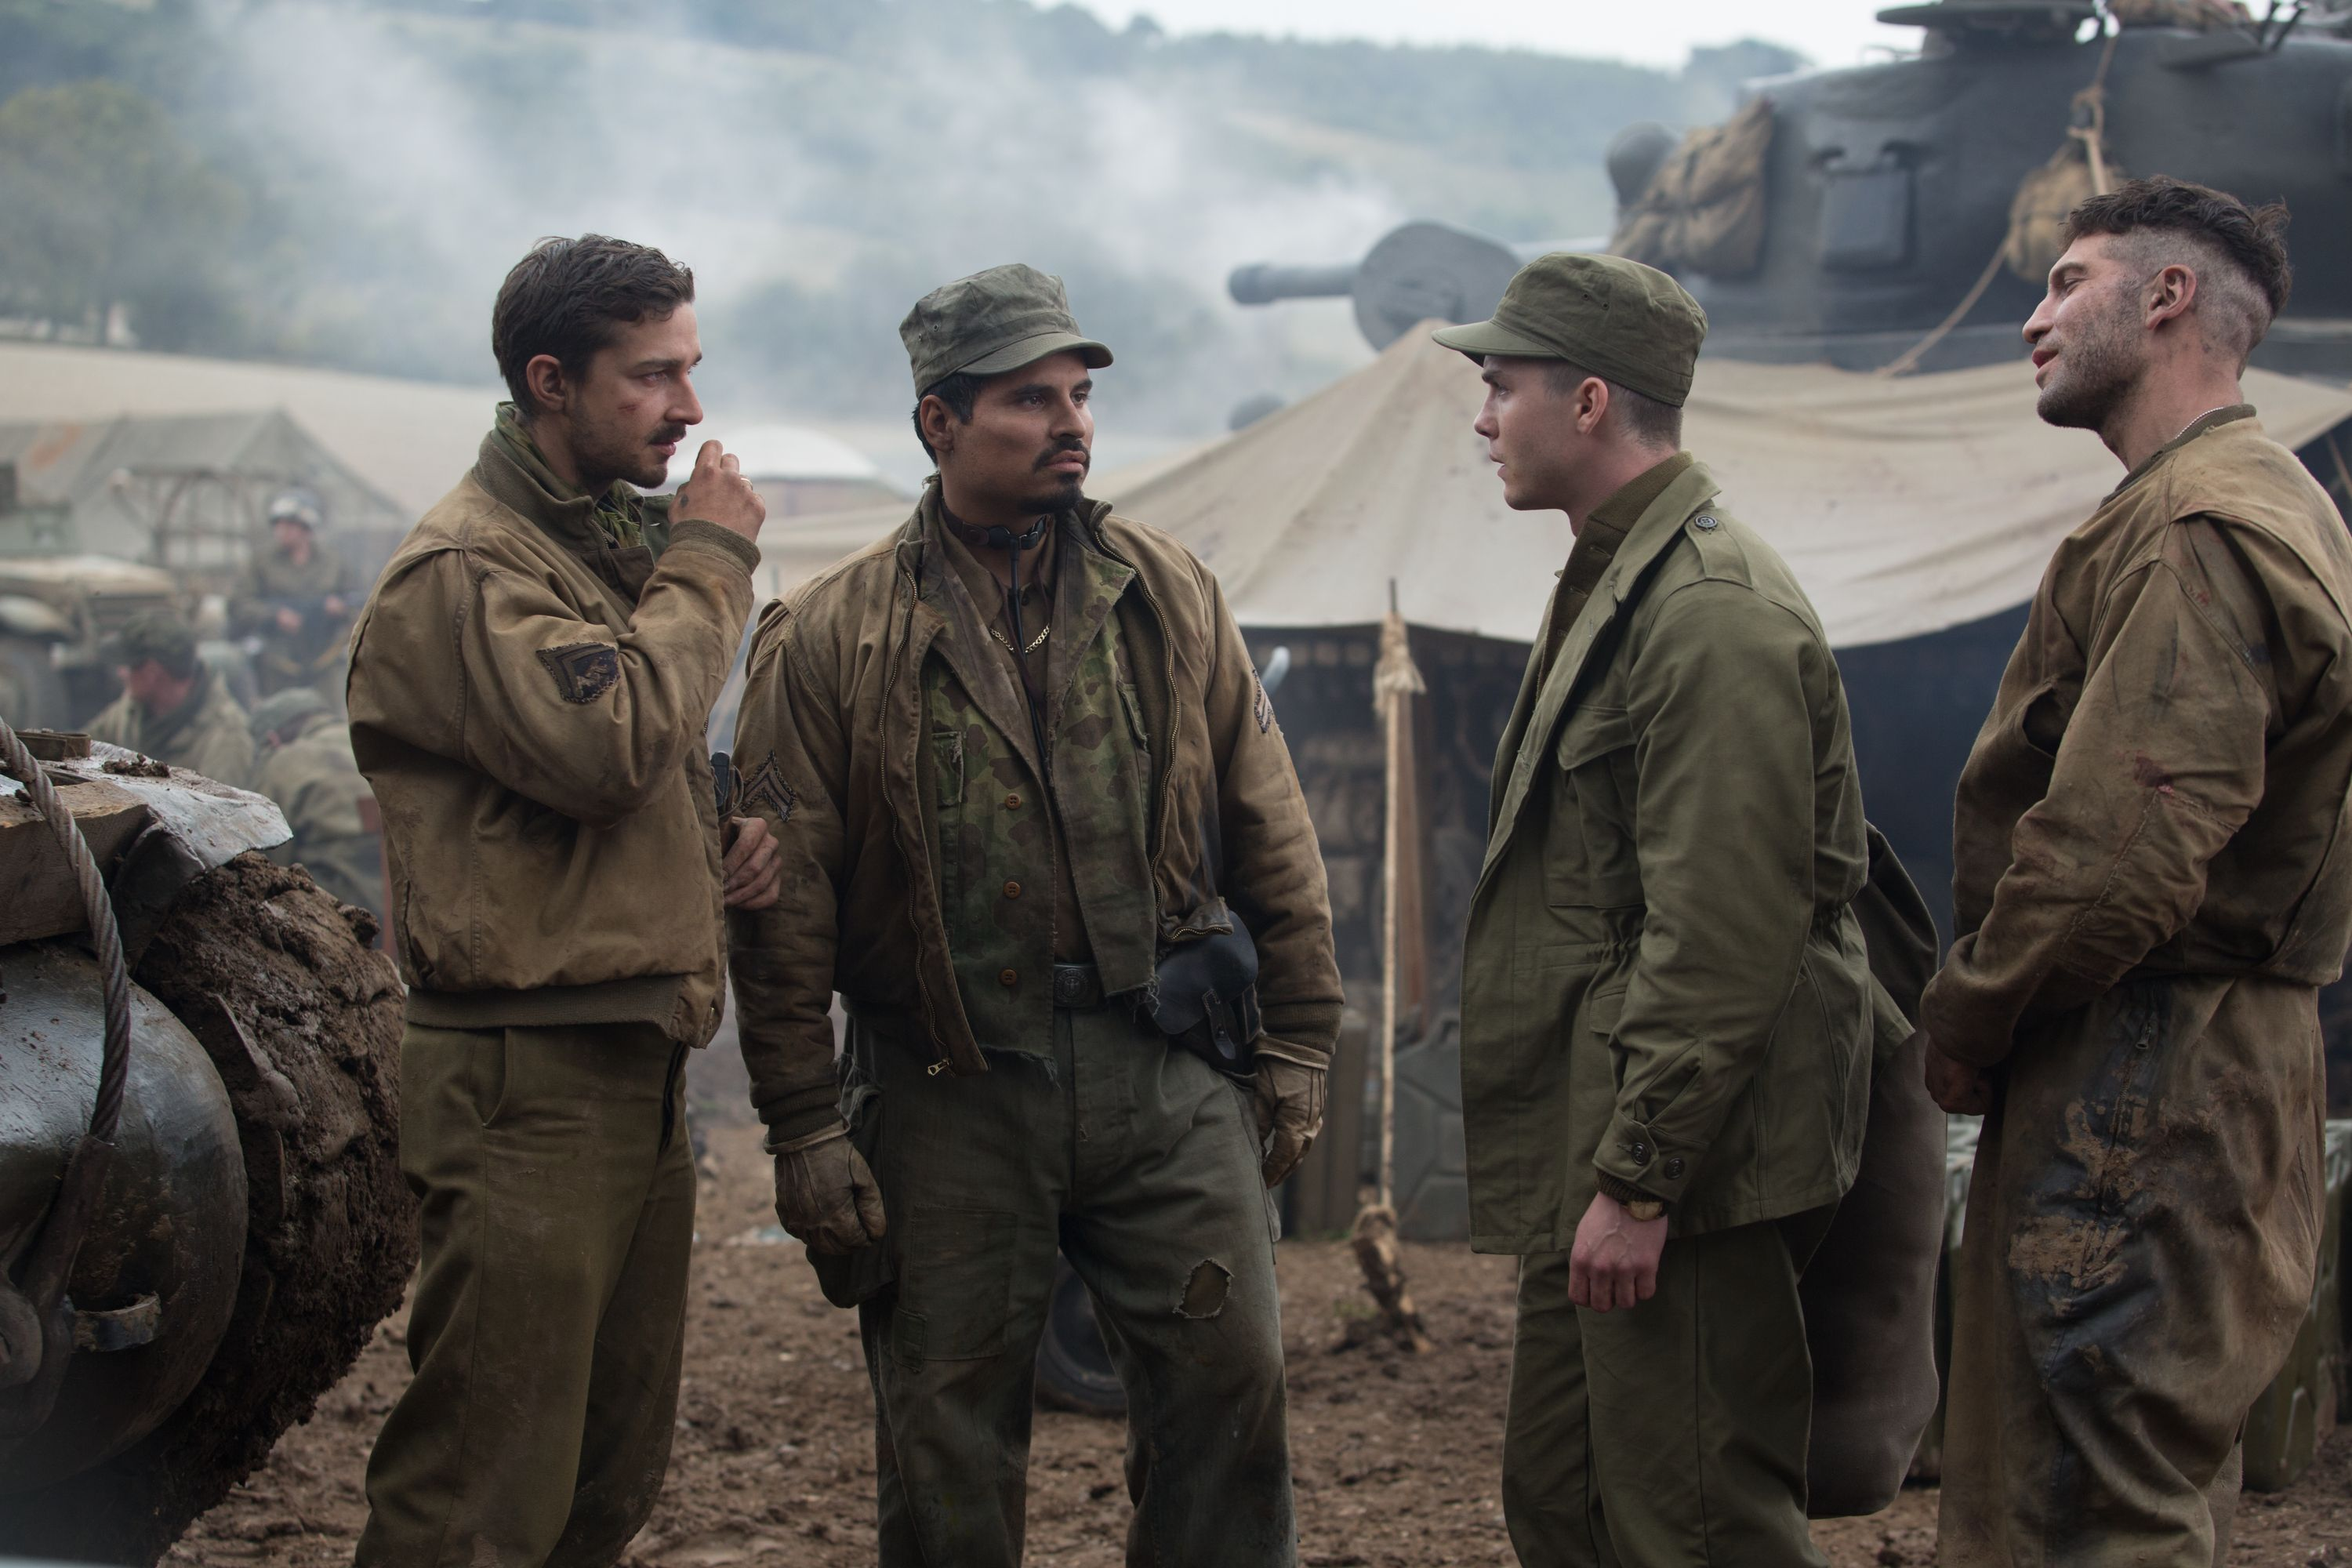 Images Of The Movie Fury: Jon Bernthal Talks Fury, Sicario, Getting Punched In The